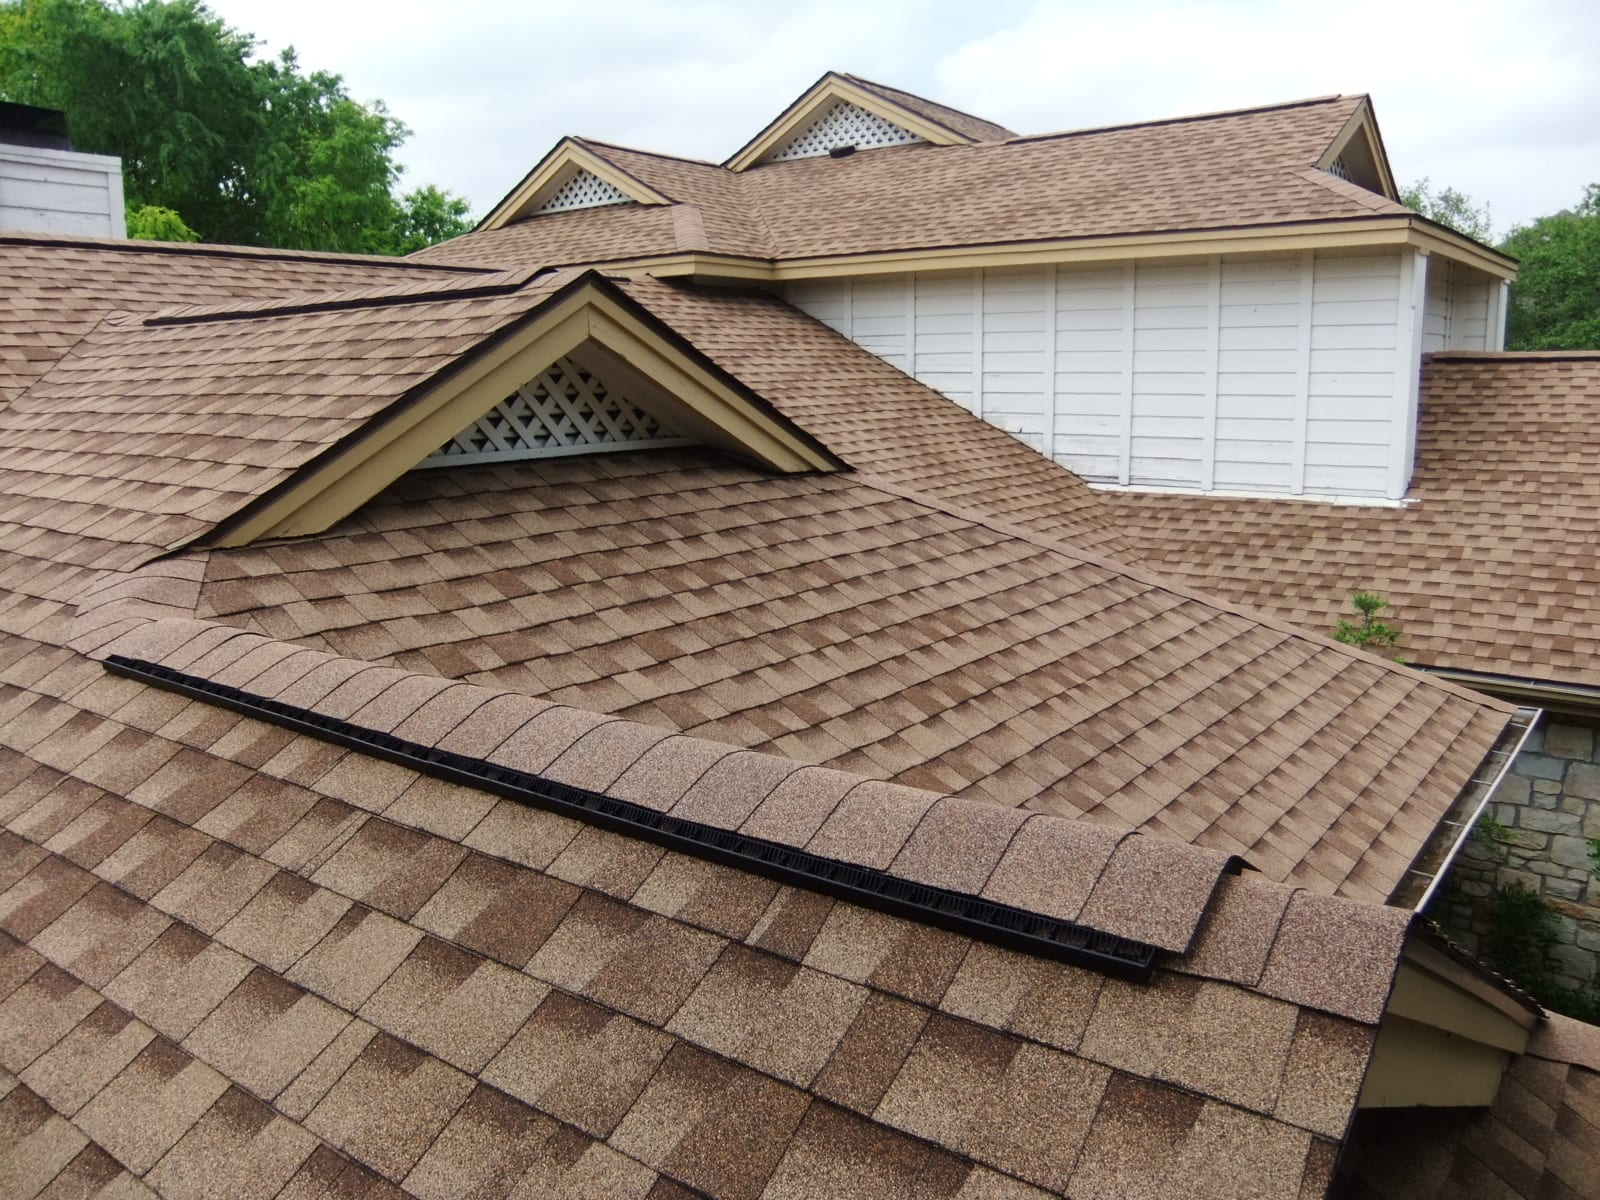 Dimensional Shingle Roofing Tampa